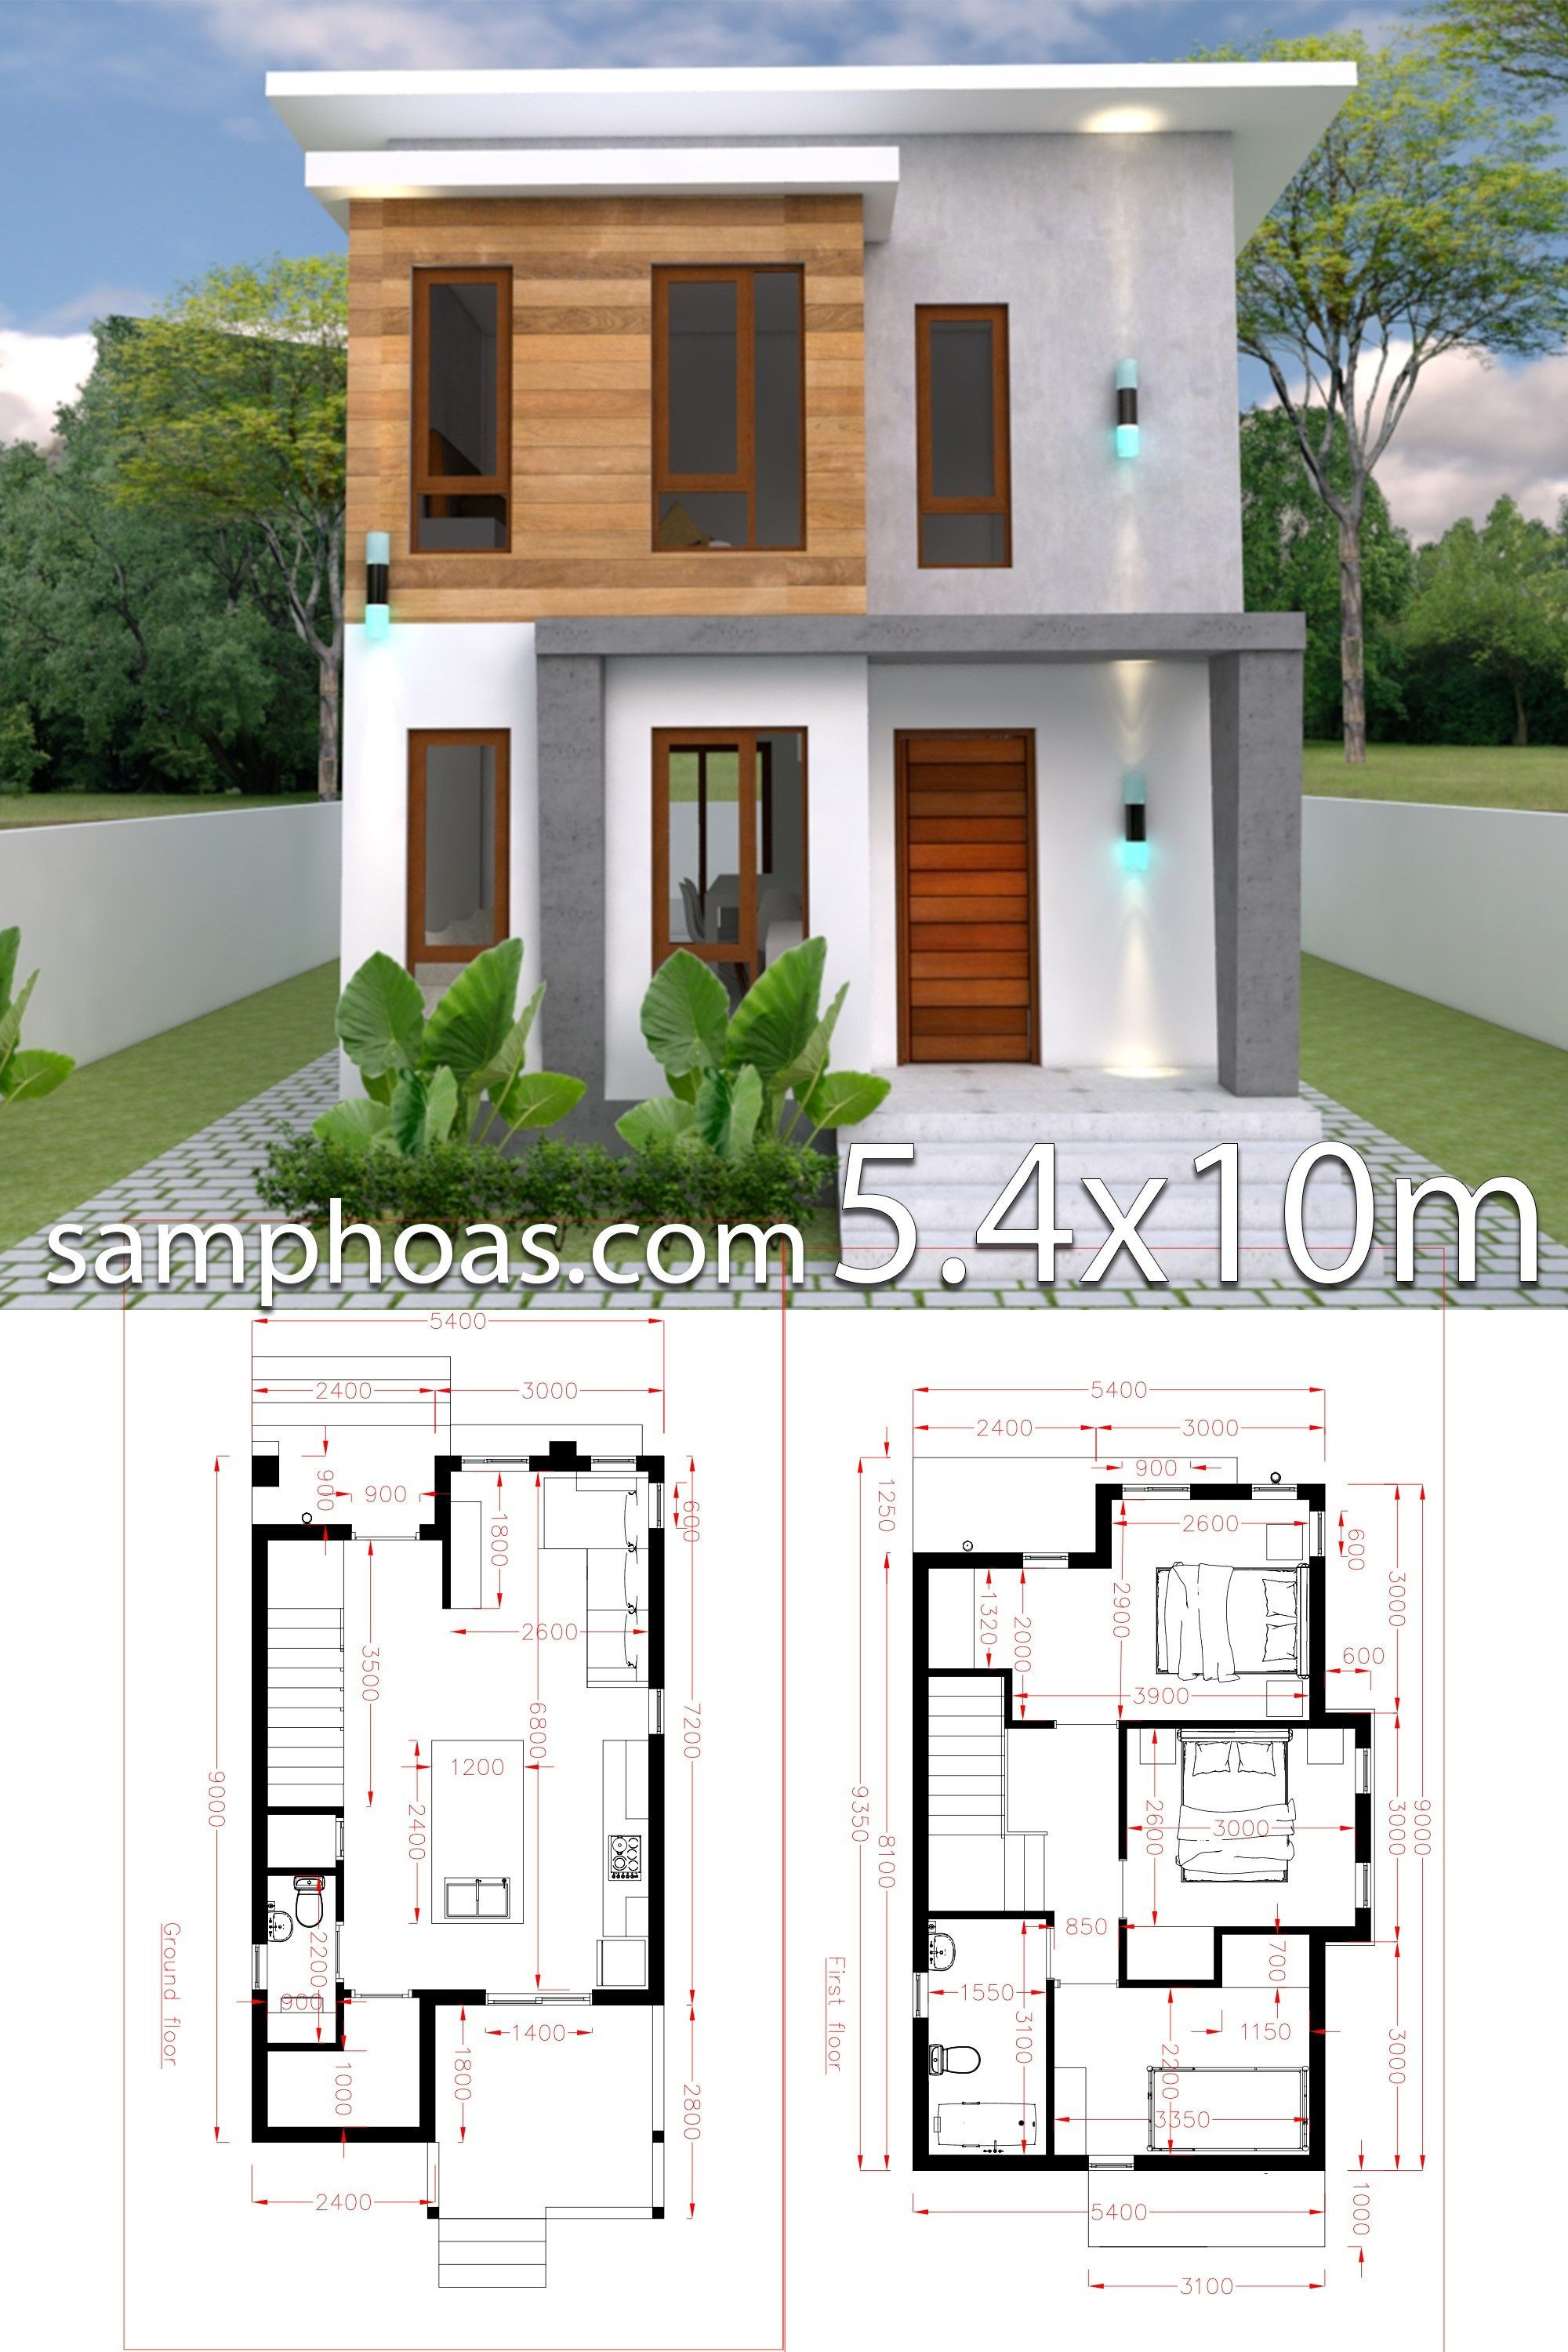 House Plans for Small House New Small Home Design Plan 5 4x10m with 3 Bedroom